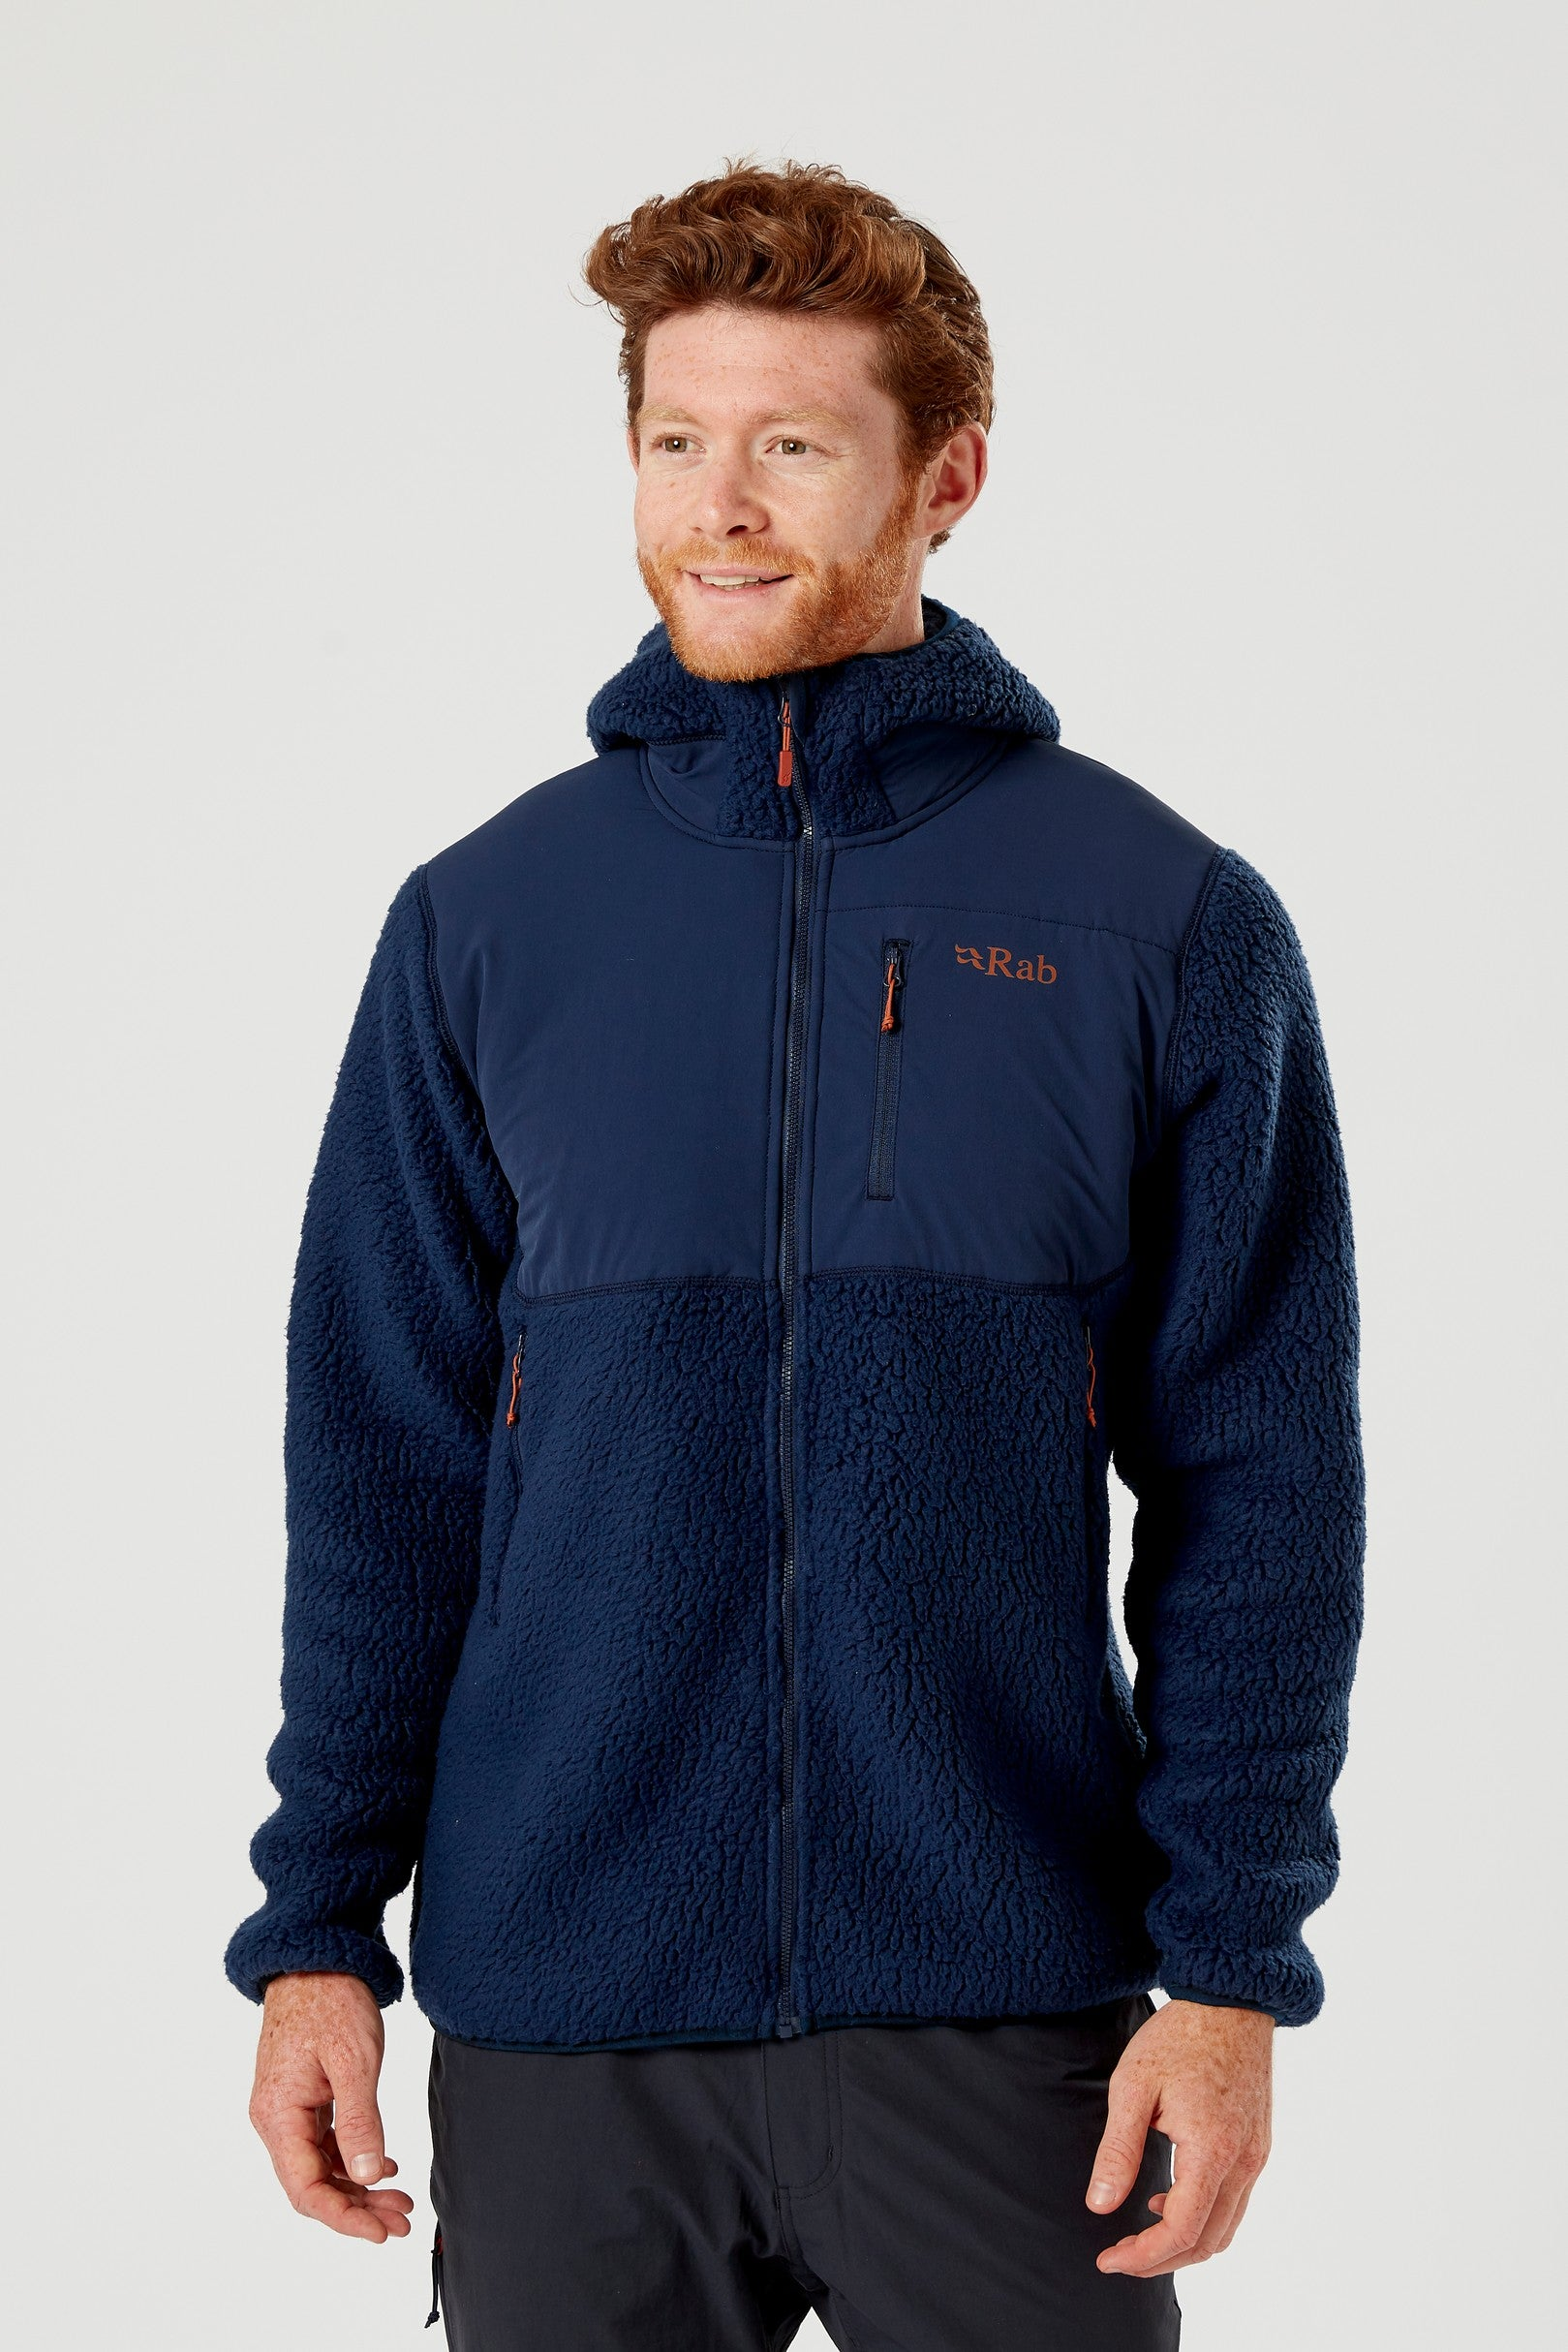 Rab Outpost Jacket for Men in Deep Ink